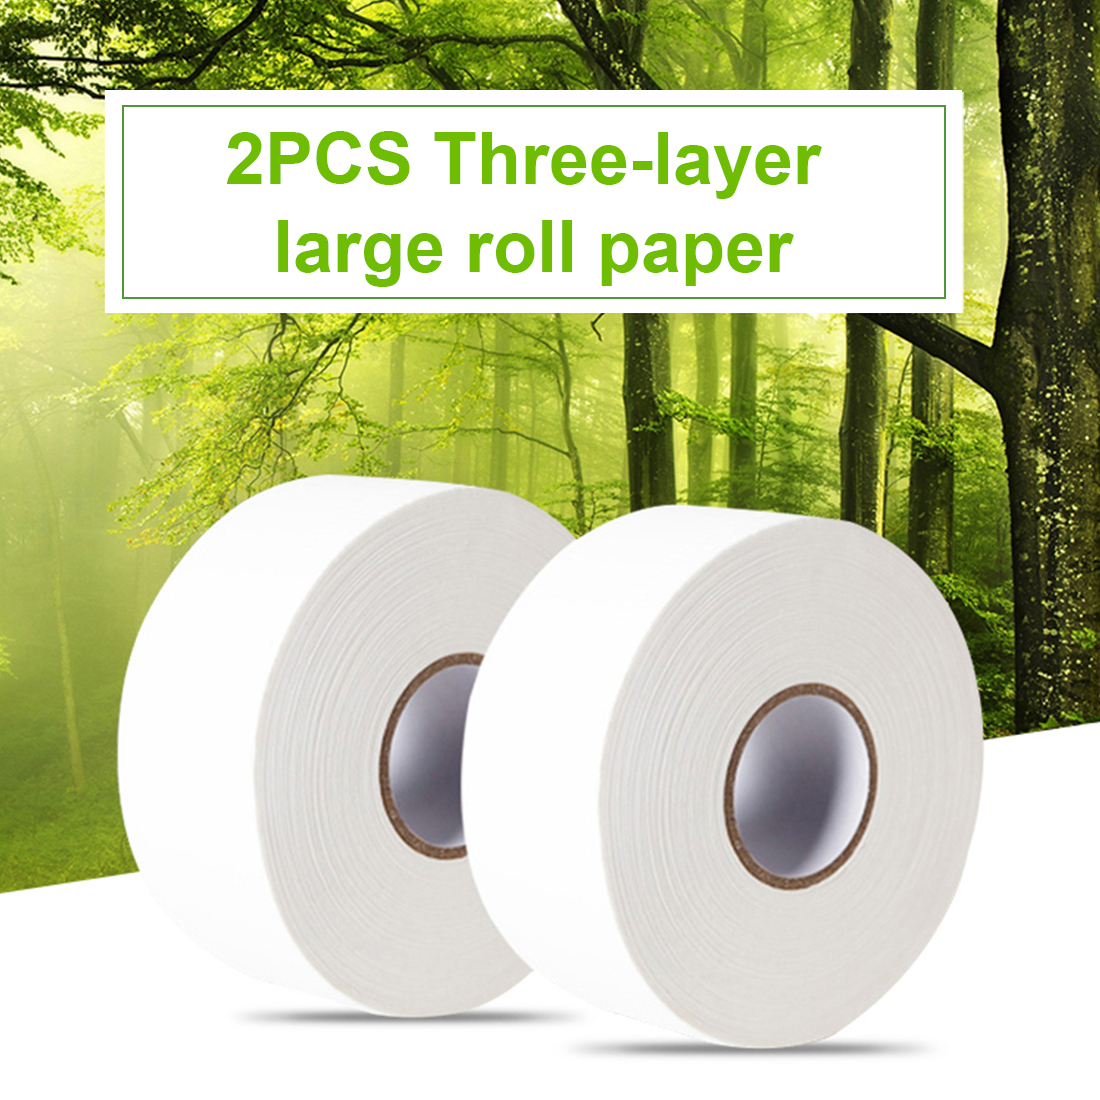 2pcs 580g/roll 900+sheets Jumbo Roll White Toilet Tissue Soft Toilet Paper Hollow Replacement Roll Paper For Home Public Hotel